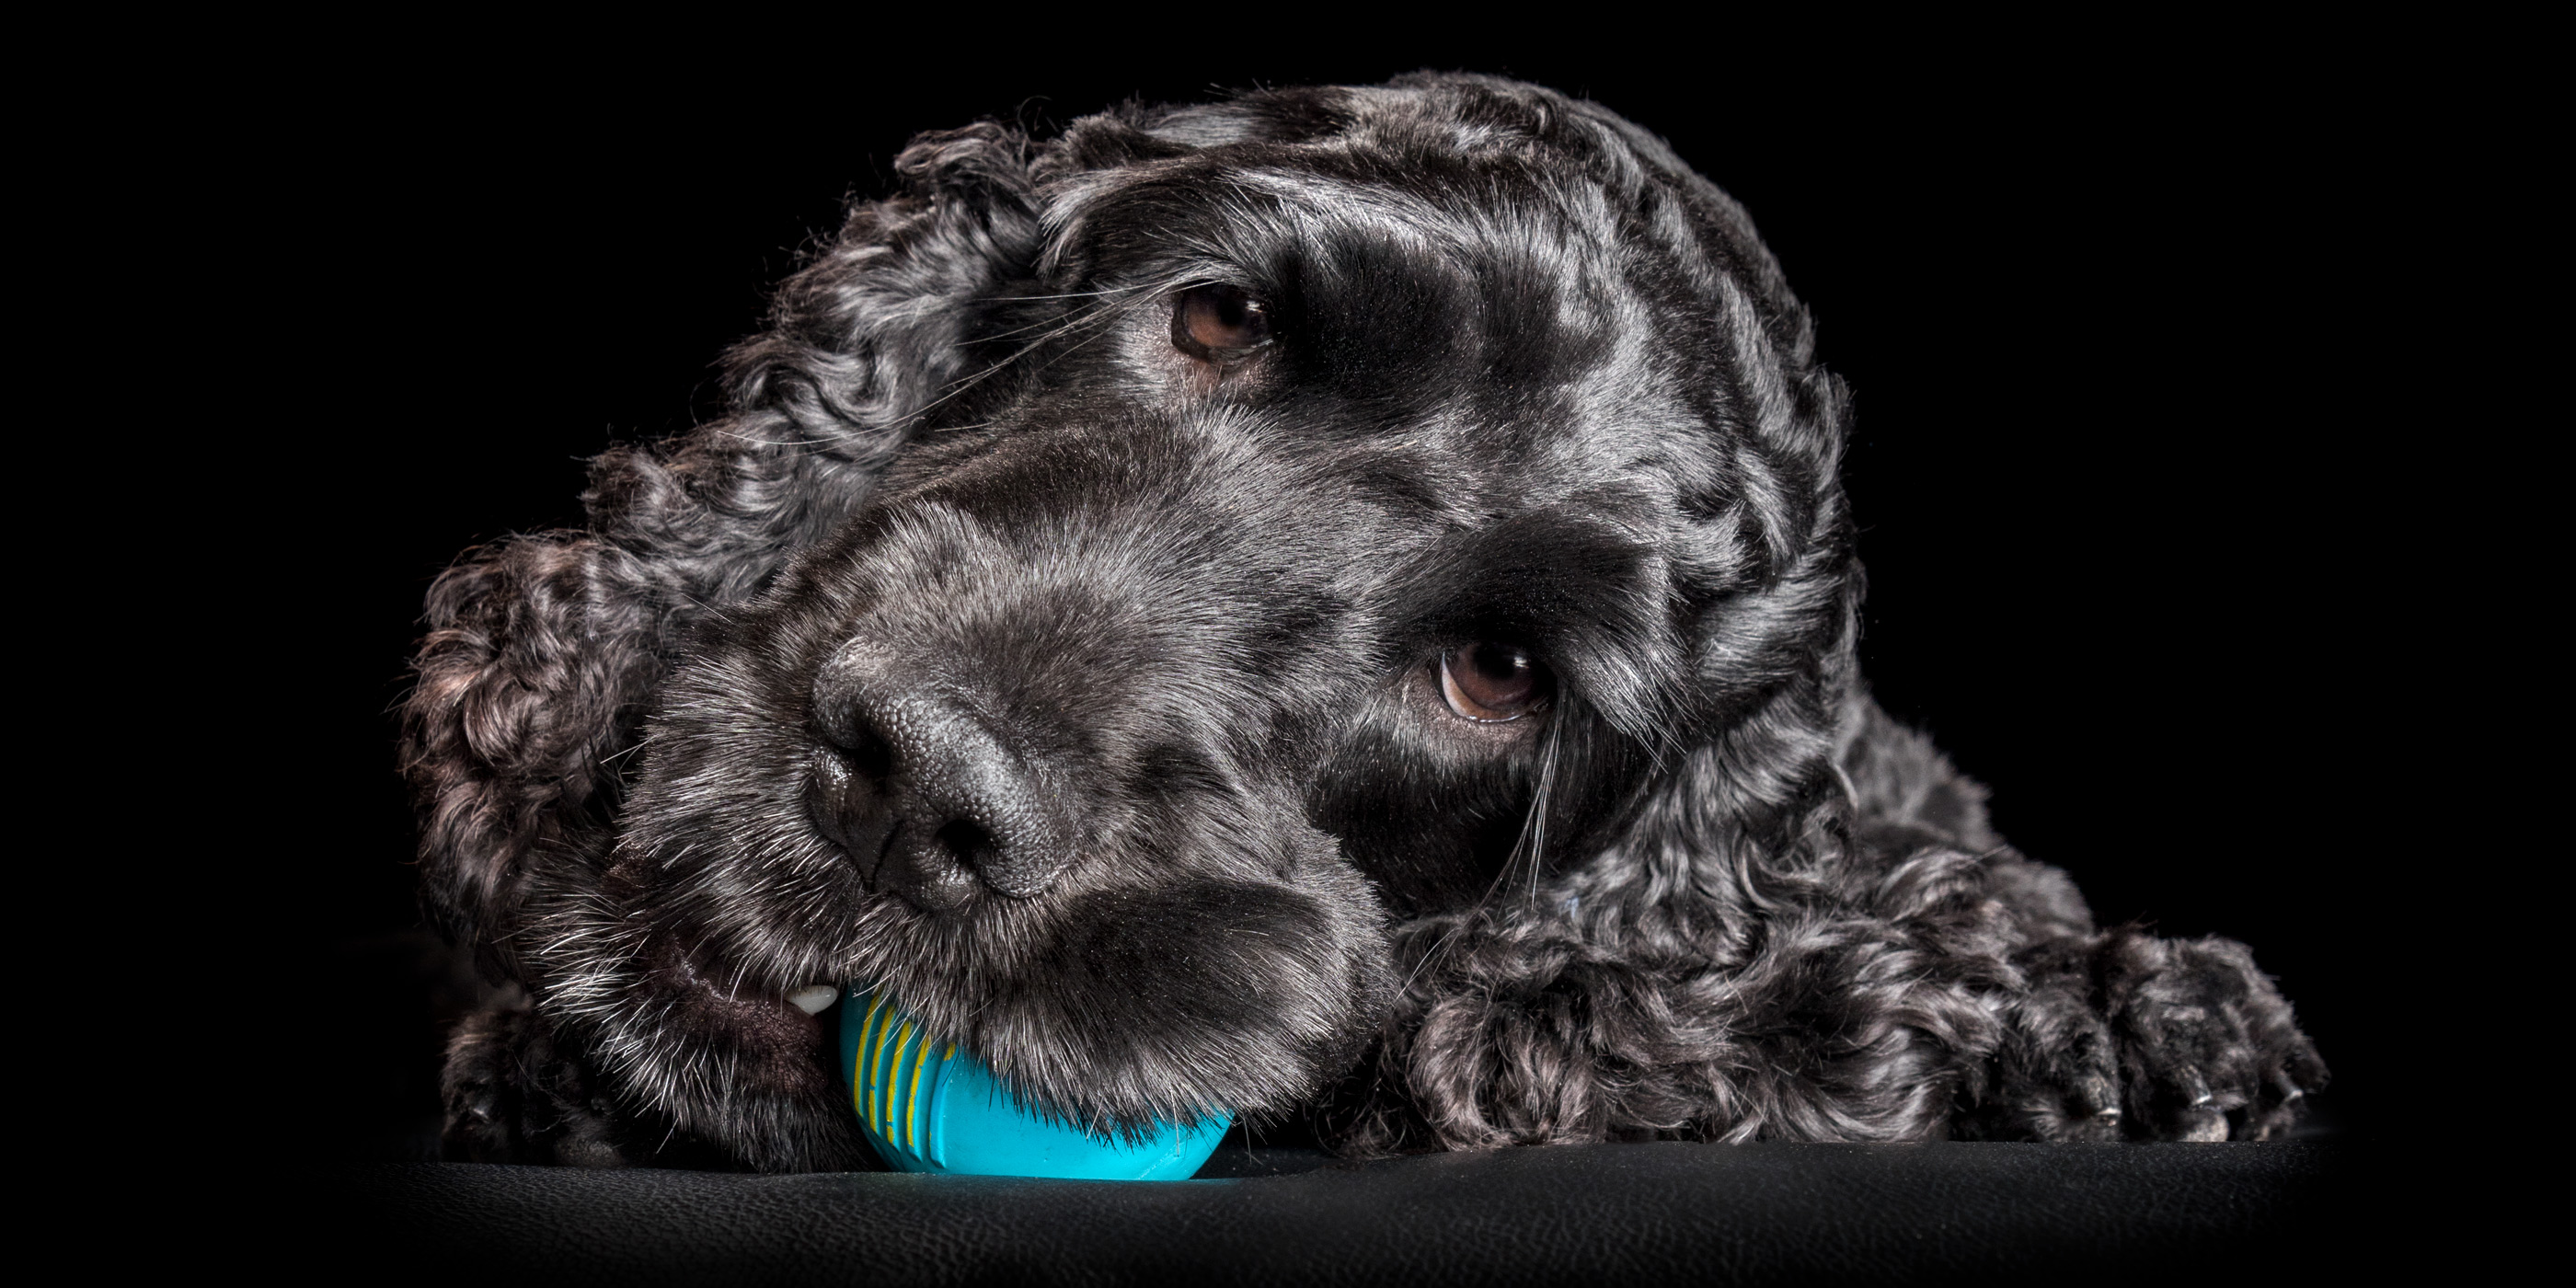 face close up black cocker spaniel chewing on blue ball